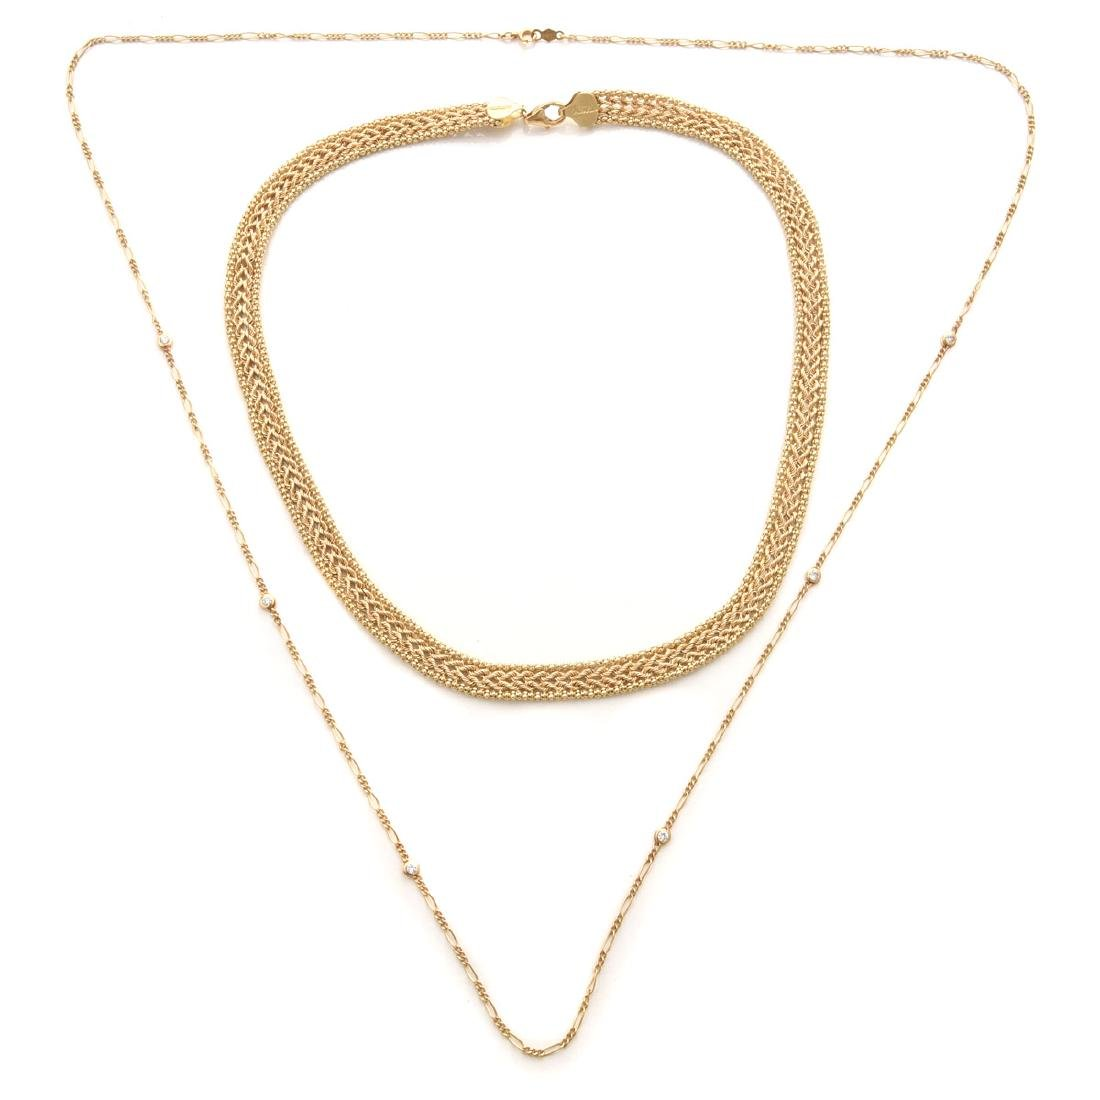 Collection of Diamond, 14k Gold, Necklaces.